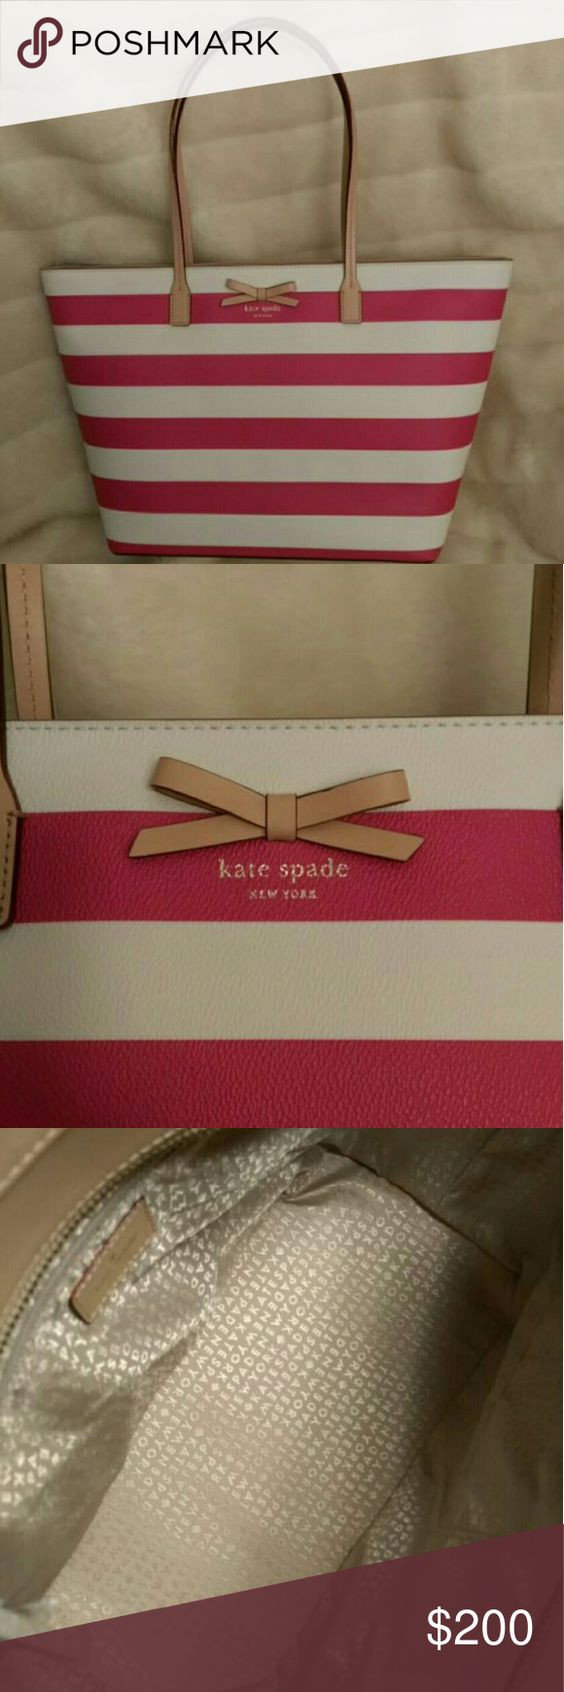 Kate Spade Tote Large pink and white striped tote by Kate Spade New York  In perfect condition Kate Spade Bags Totes